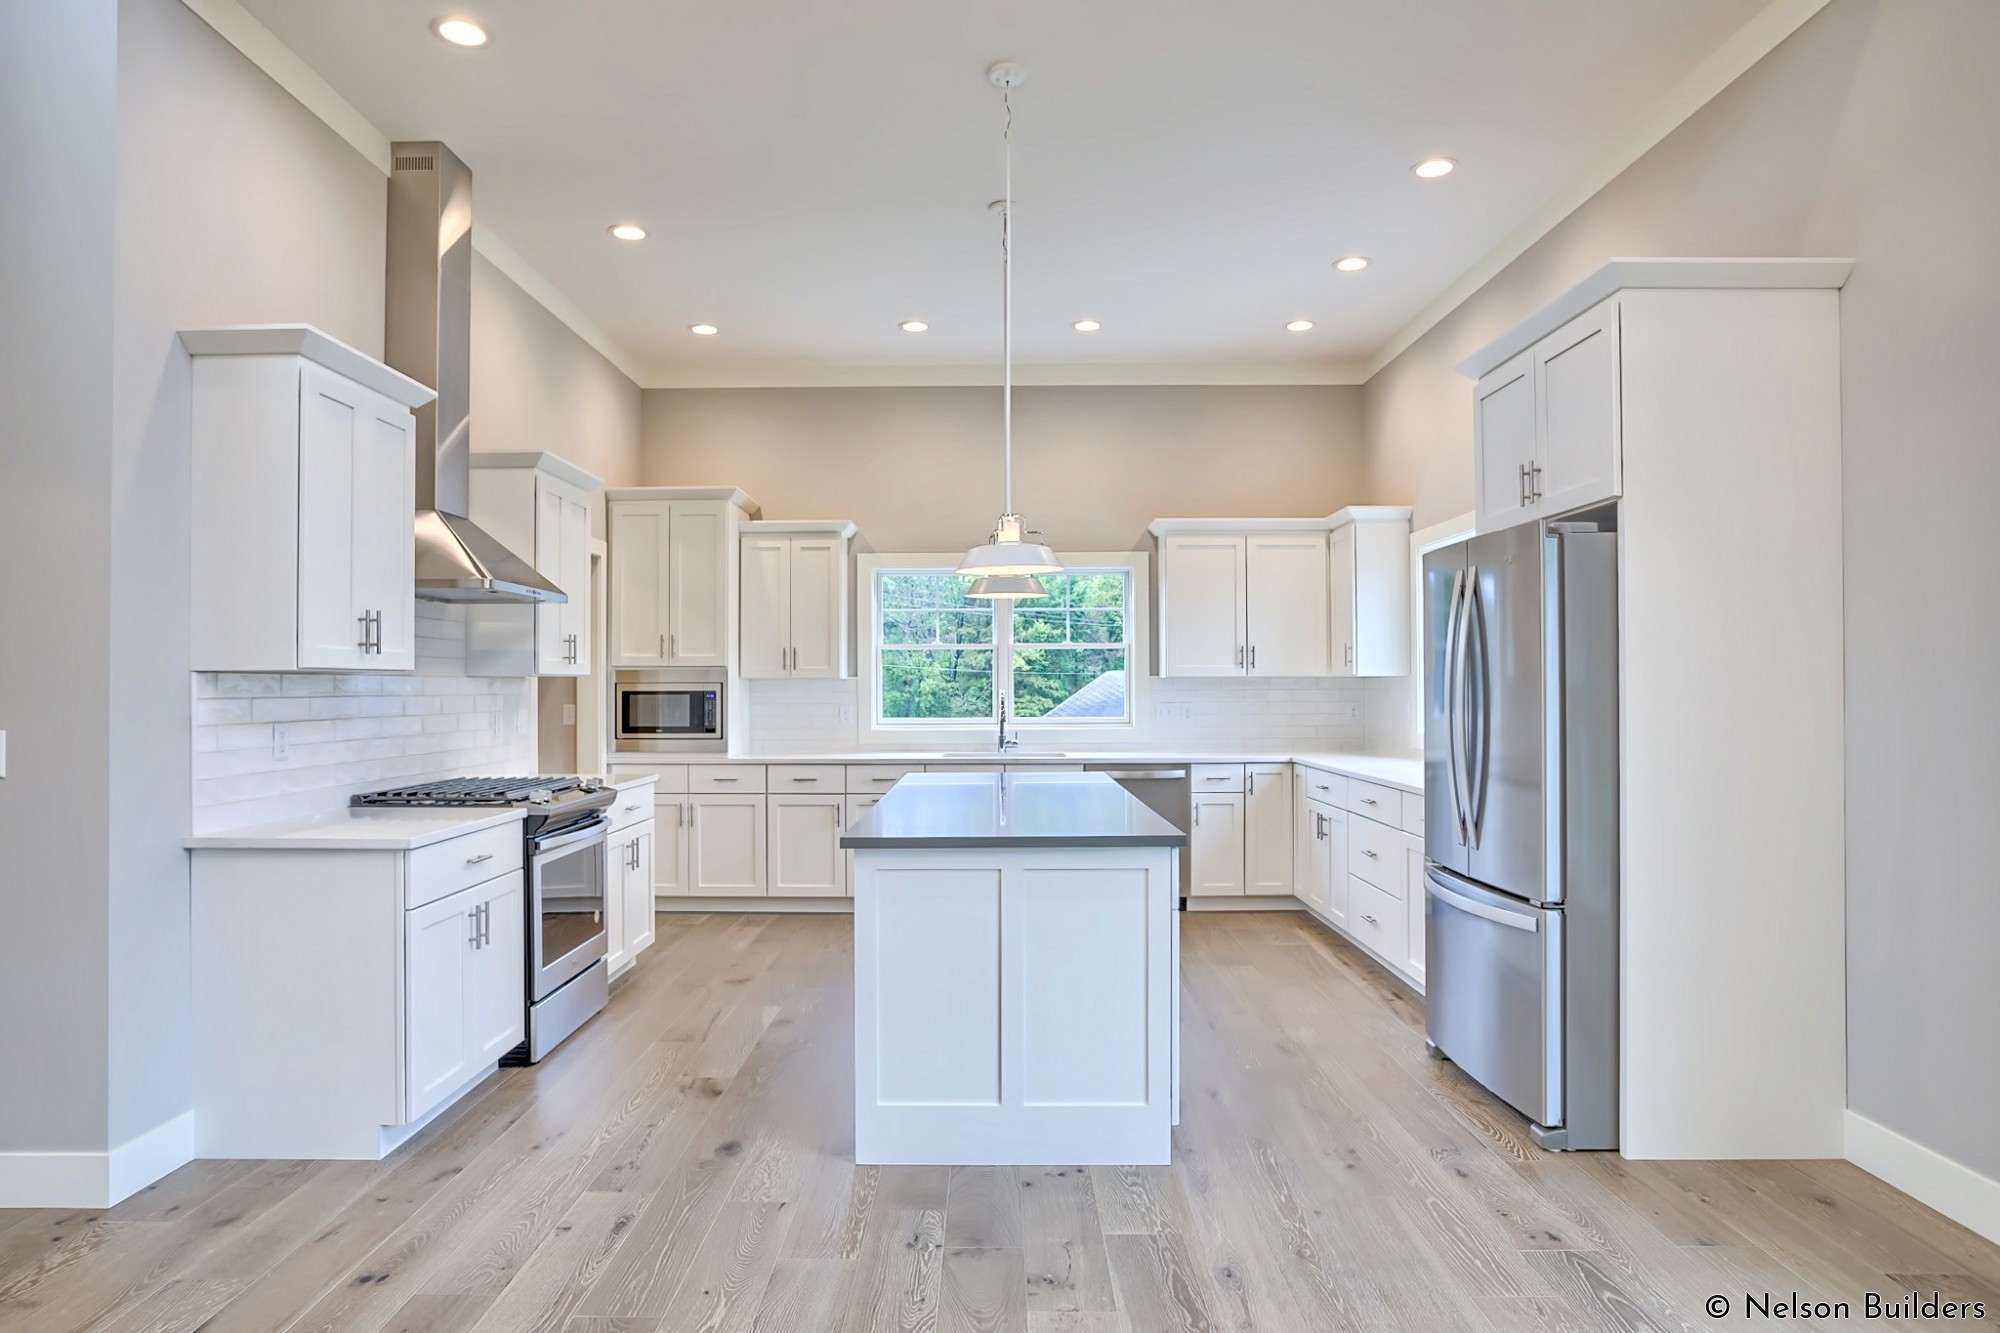 The large kitchen of this new custom plan features 11-foot ceilings and plenty of natural light.